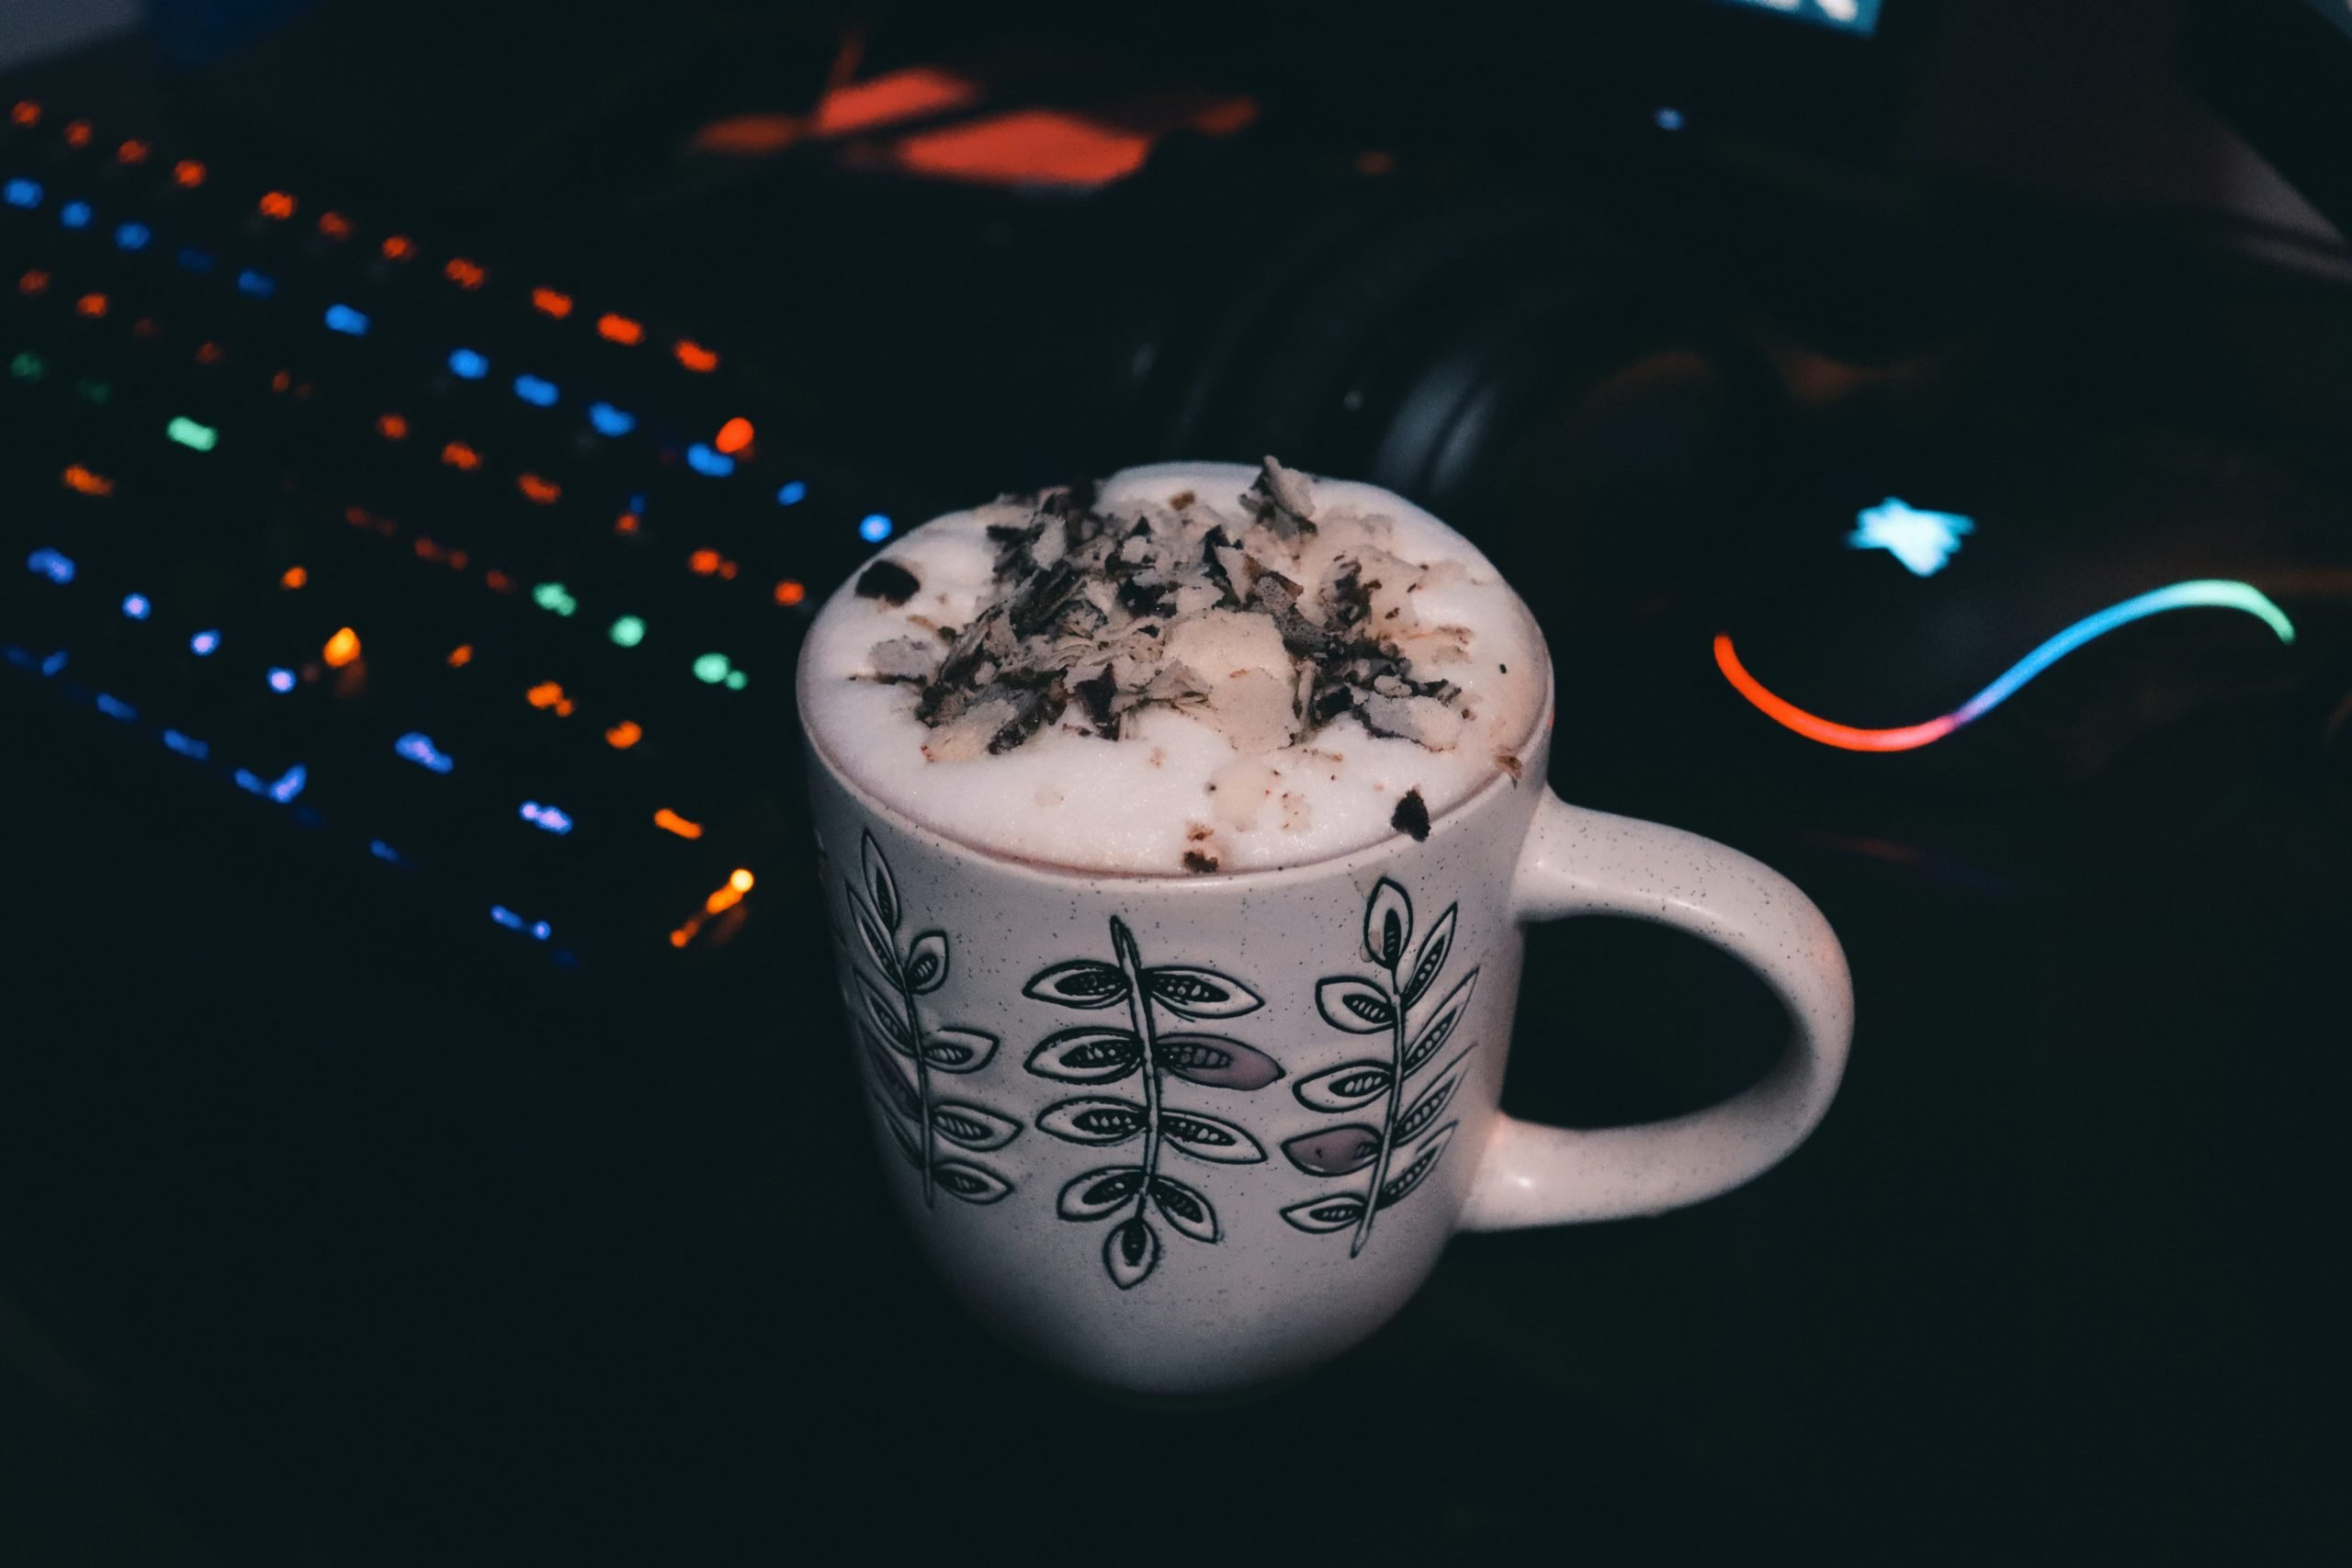 Coffee on a gaming set up computer